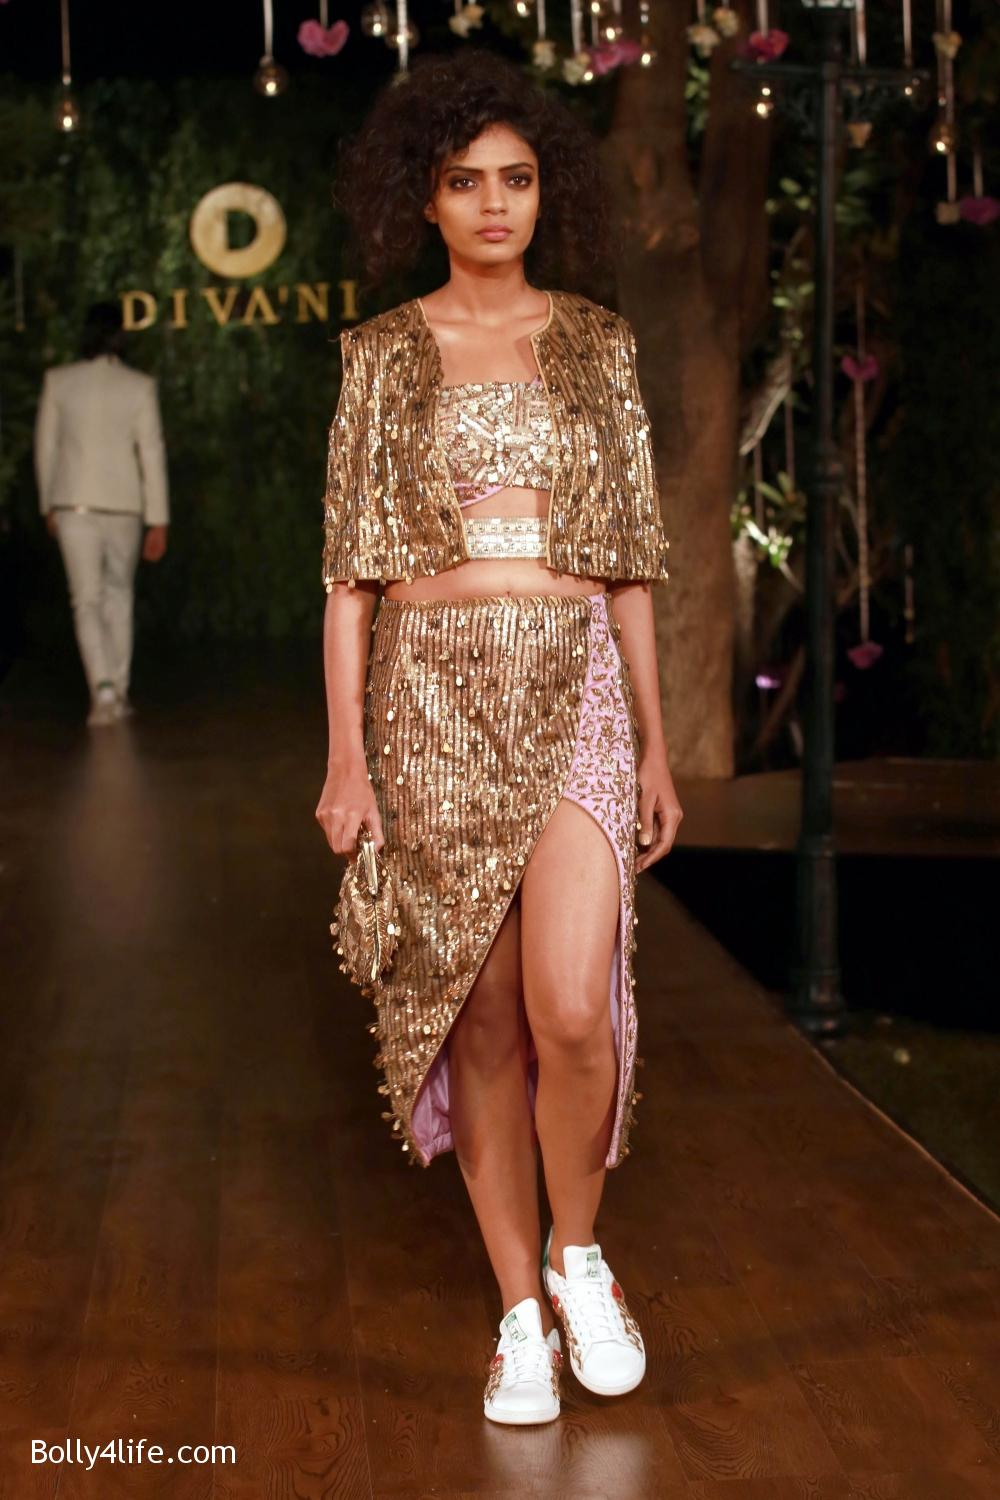 Divani-Fashion-Show-Ranveer-Singh-and-Vaani-Kapoor-7.jpg